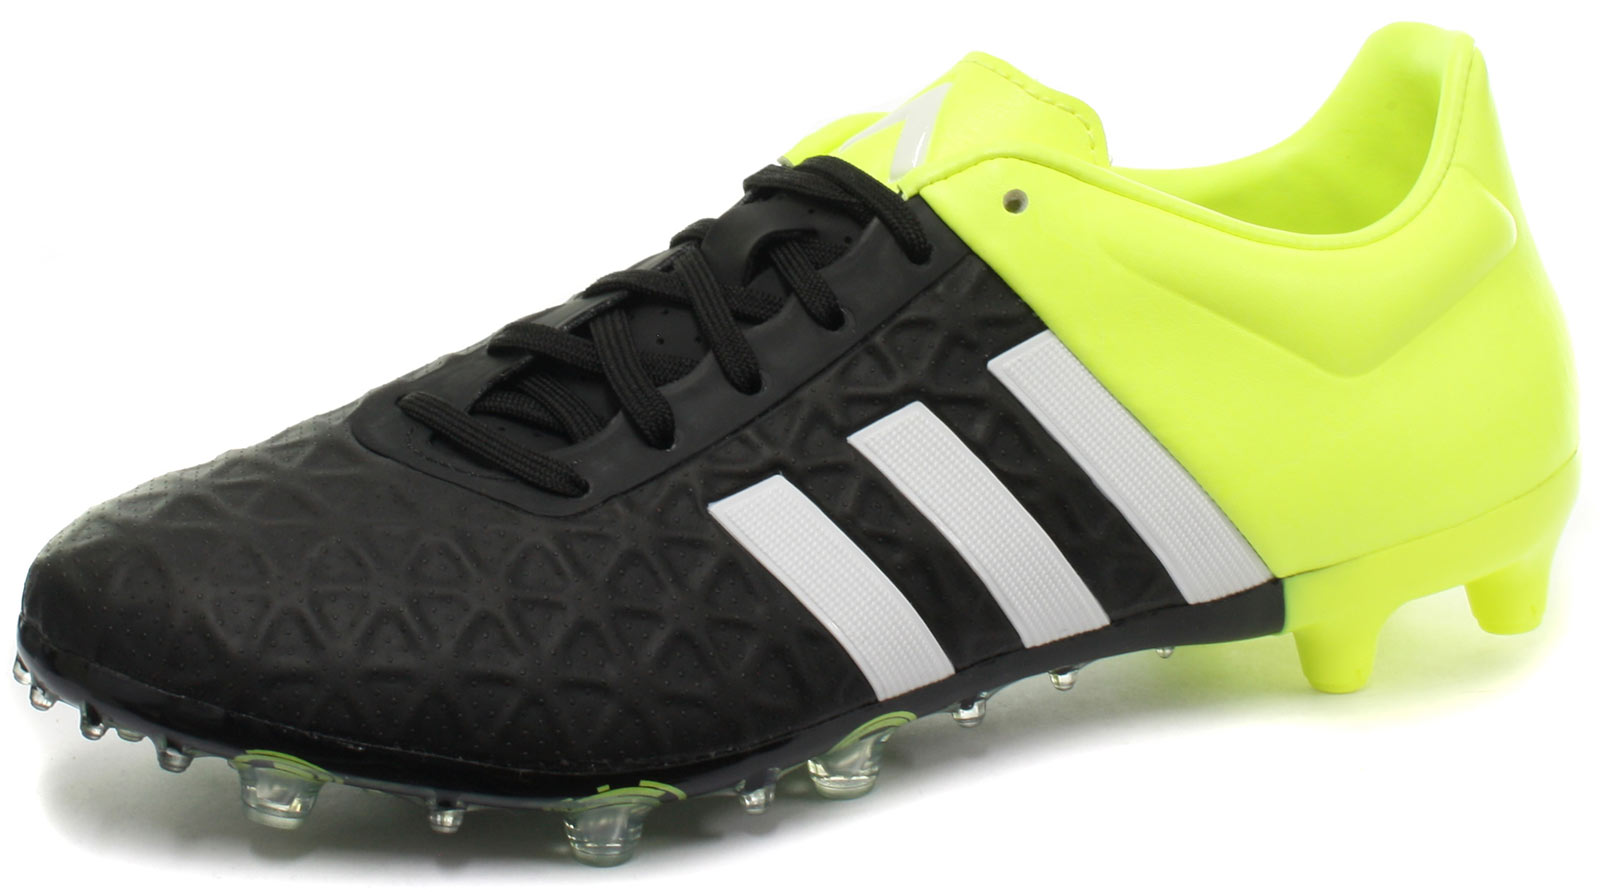 adidas Ace 15.2 FG AG Blk Yellow Mens Football Boots   Soccer Cleats ... 3420f1c6fc6d5